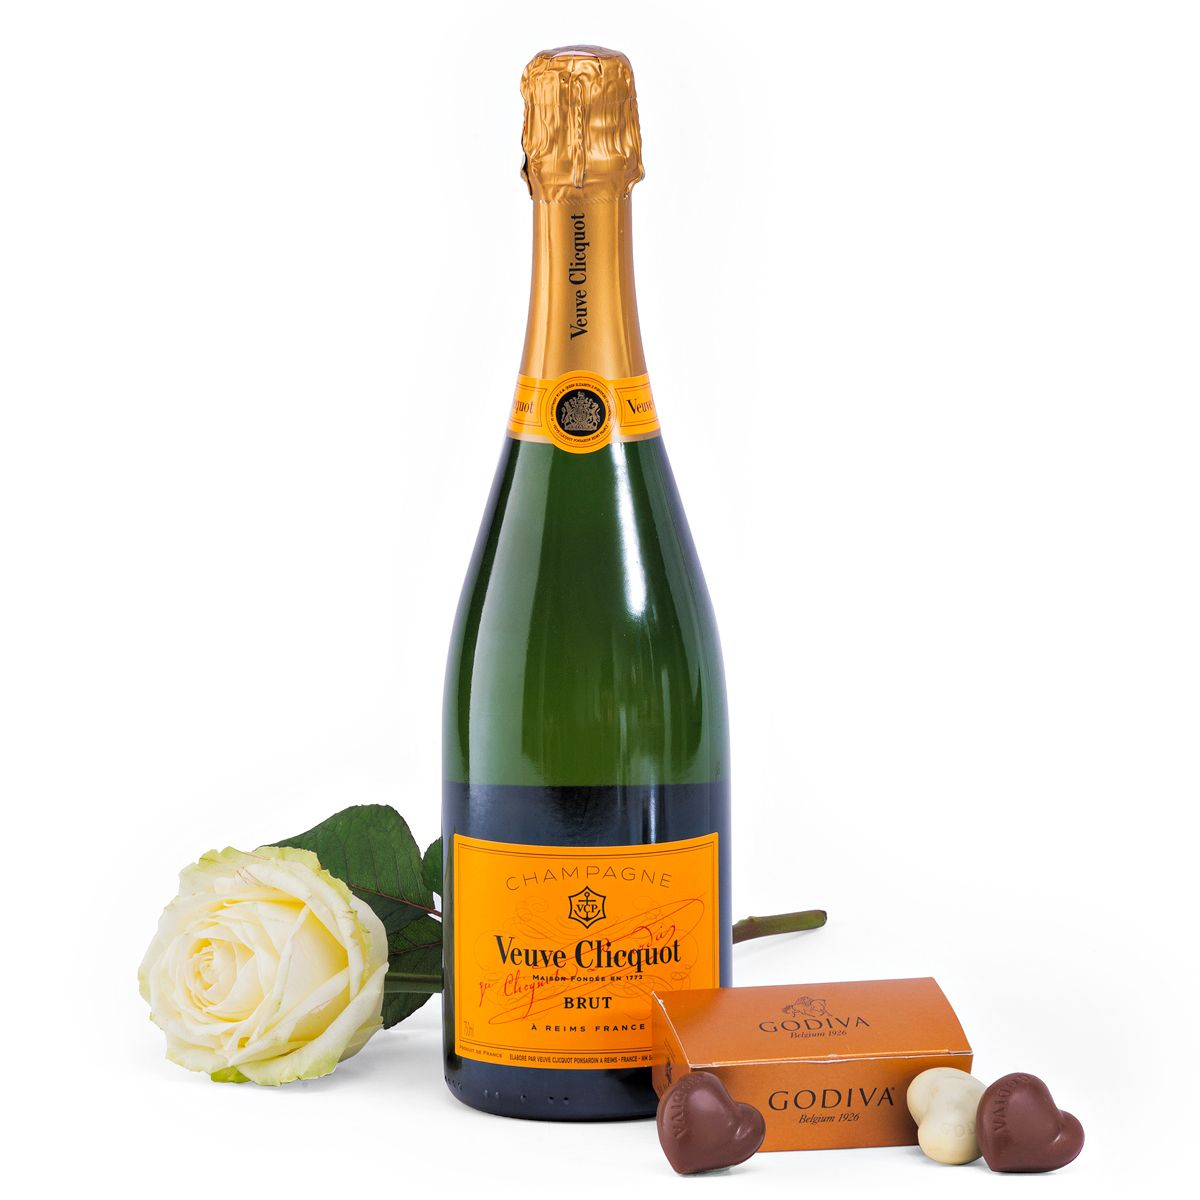 Veuve Clicquot Champagne & Witte Roos